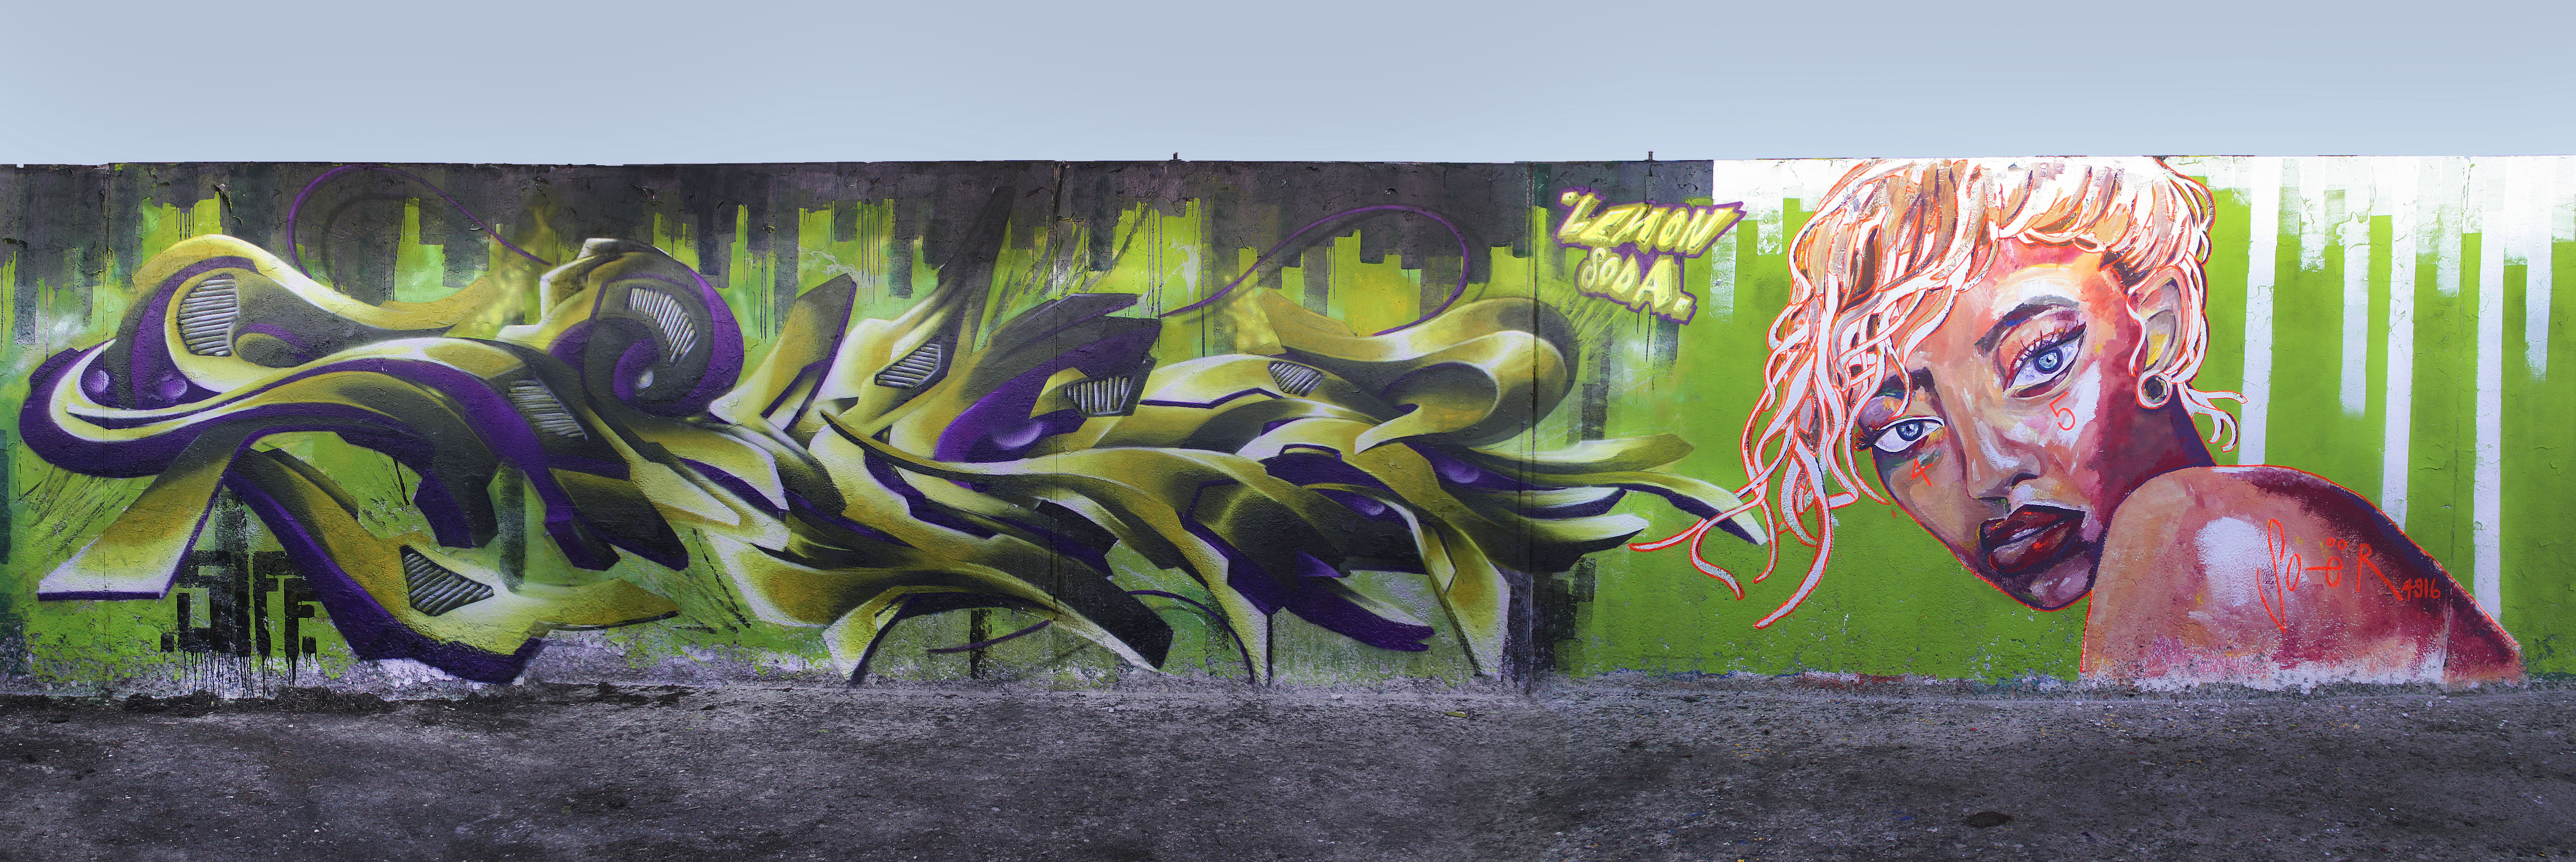 Graffiti u streetart by sekah u soër lemon soda graffitiwalls